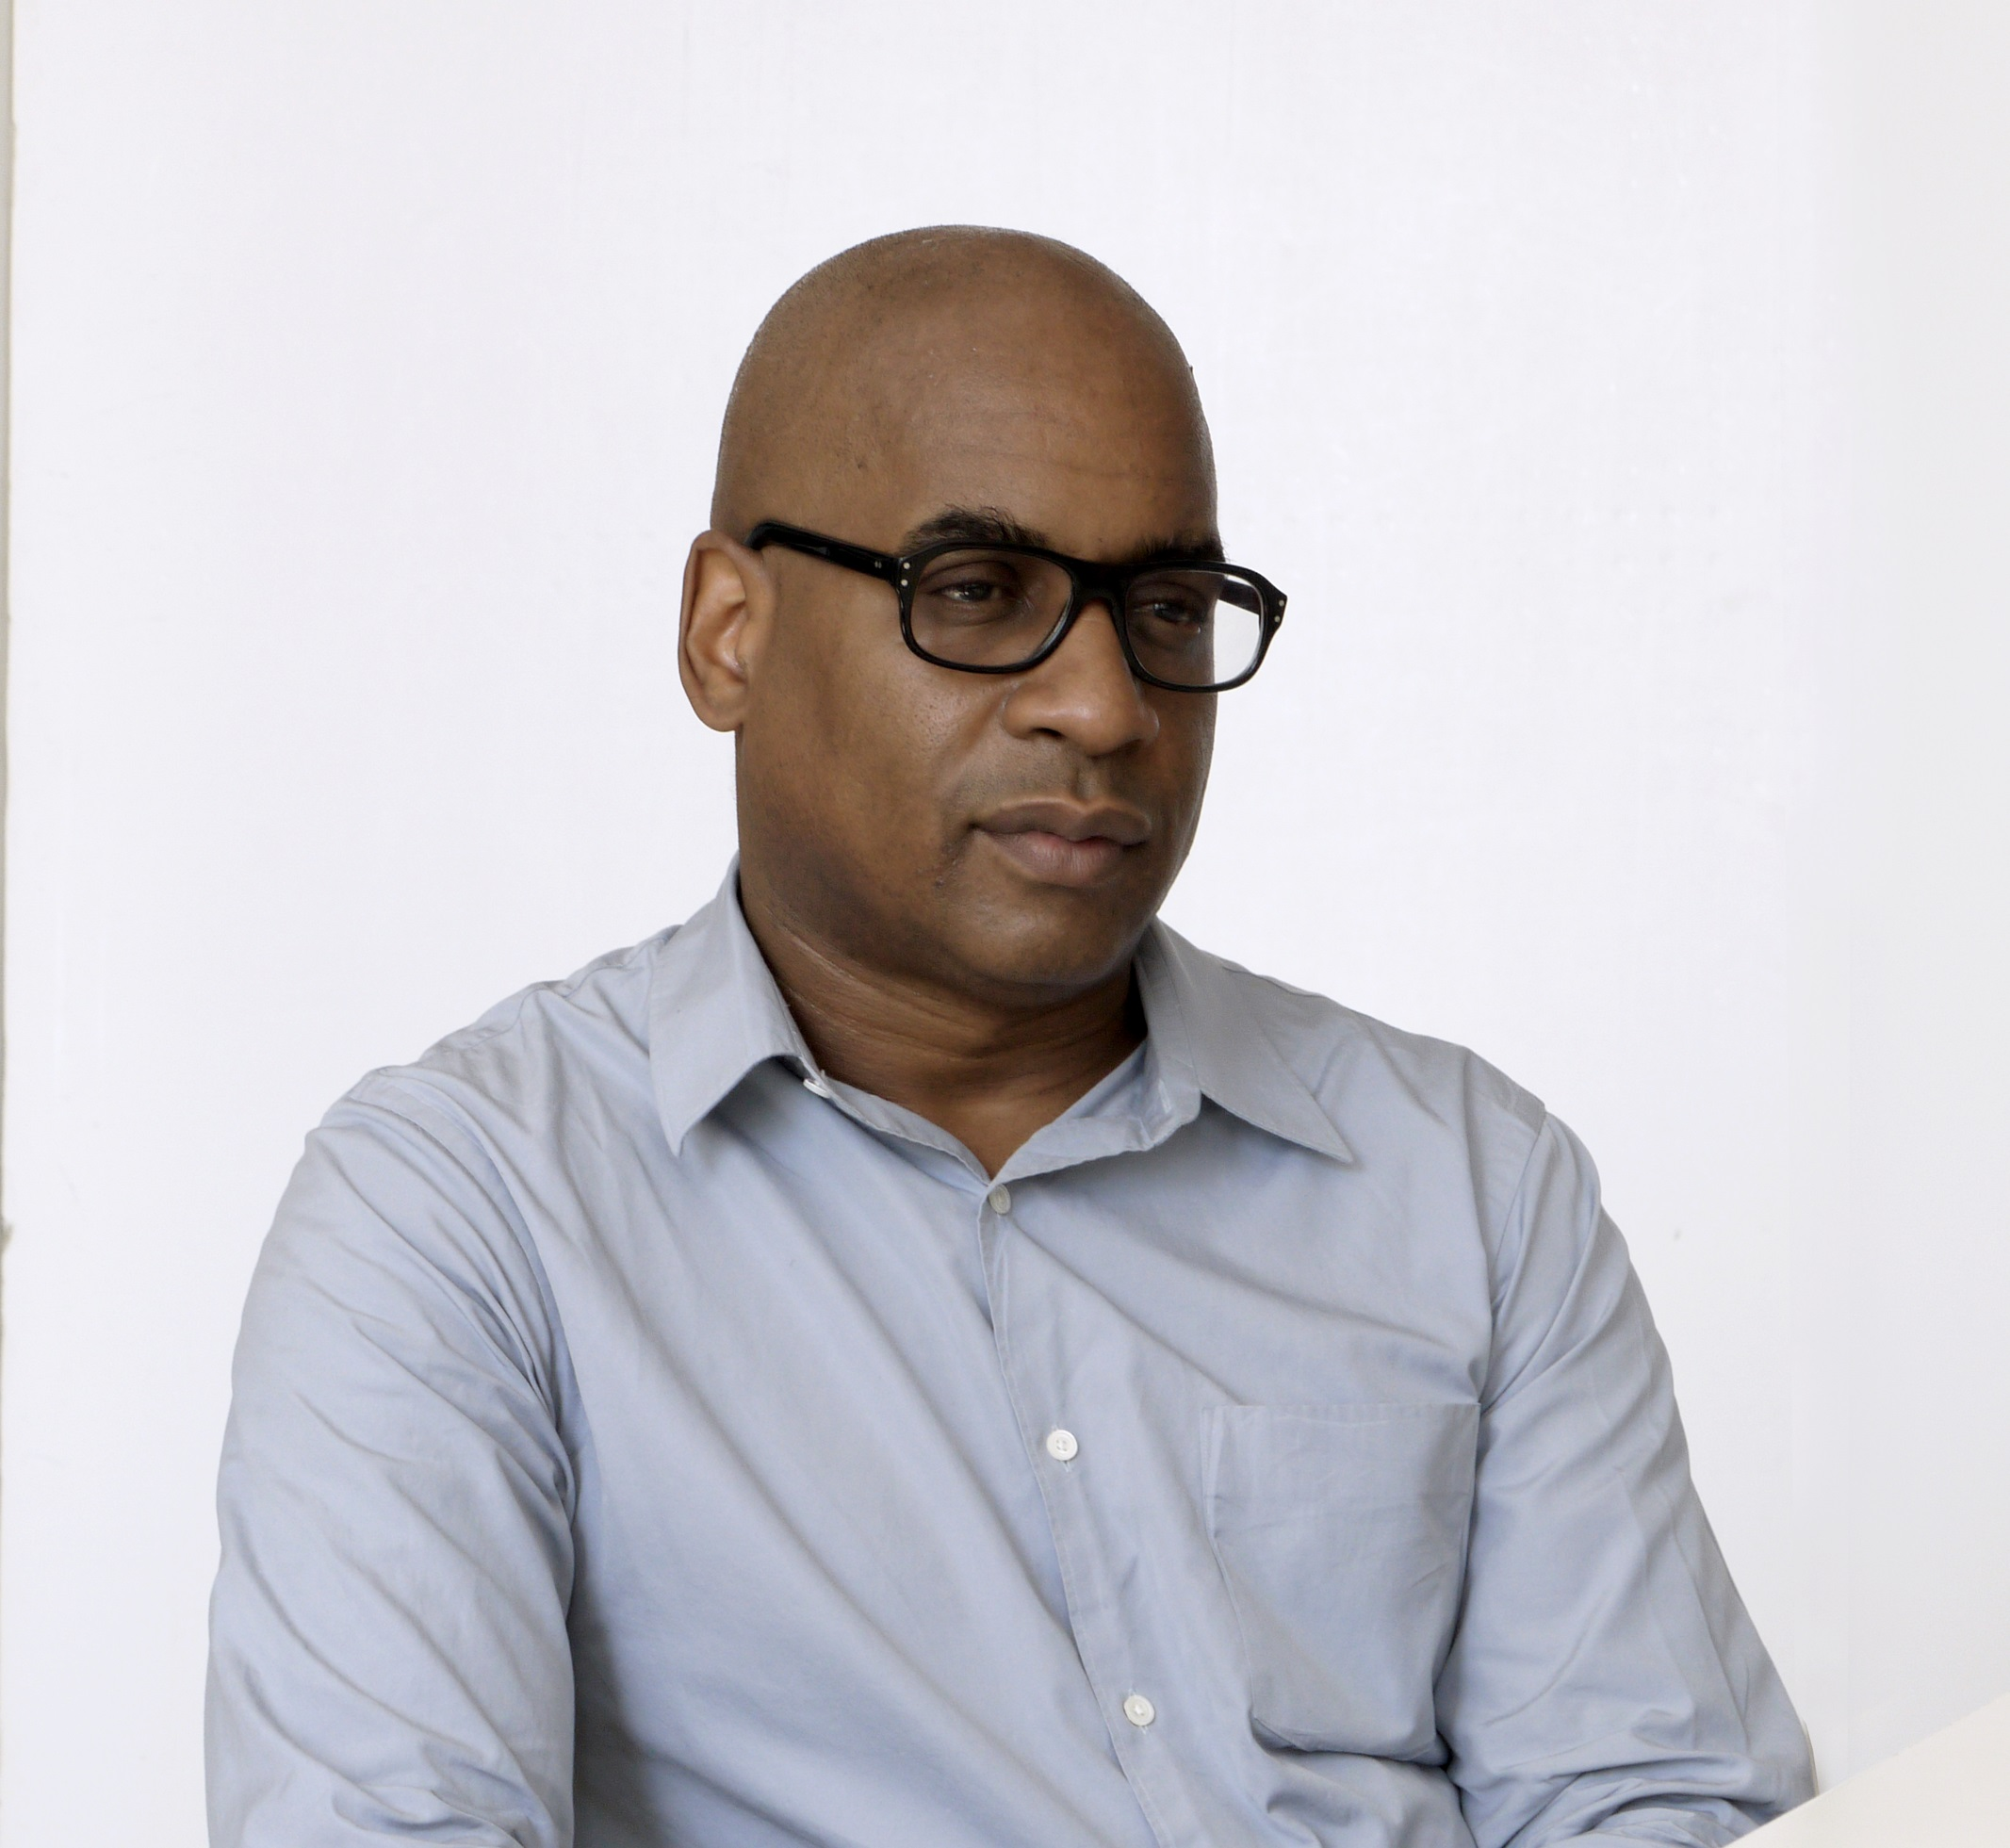 Meet Glenn Ligon, 2015 SOAPBOX Honoree